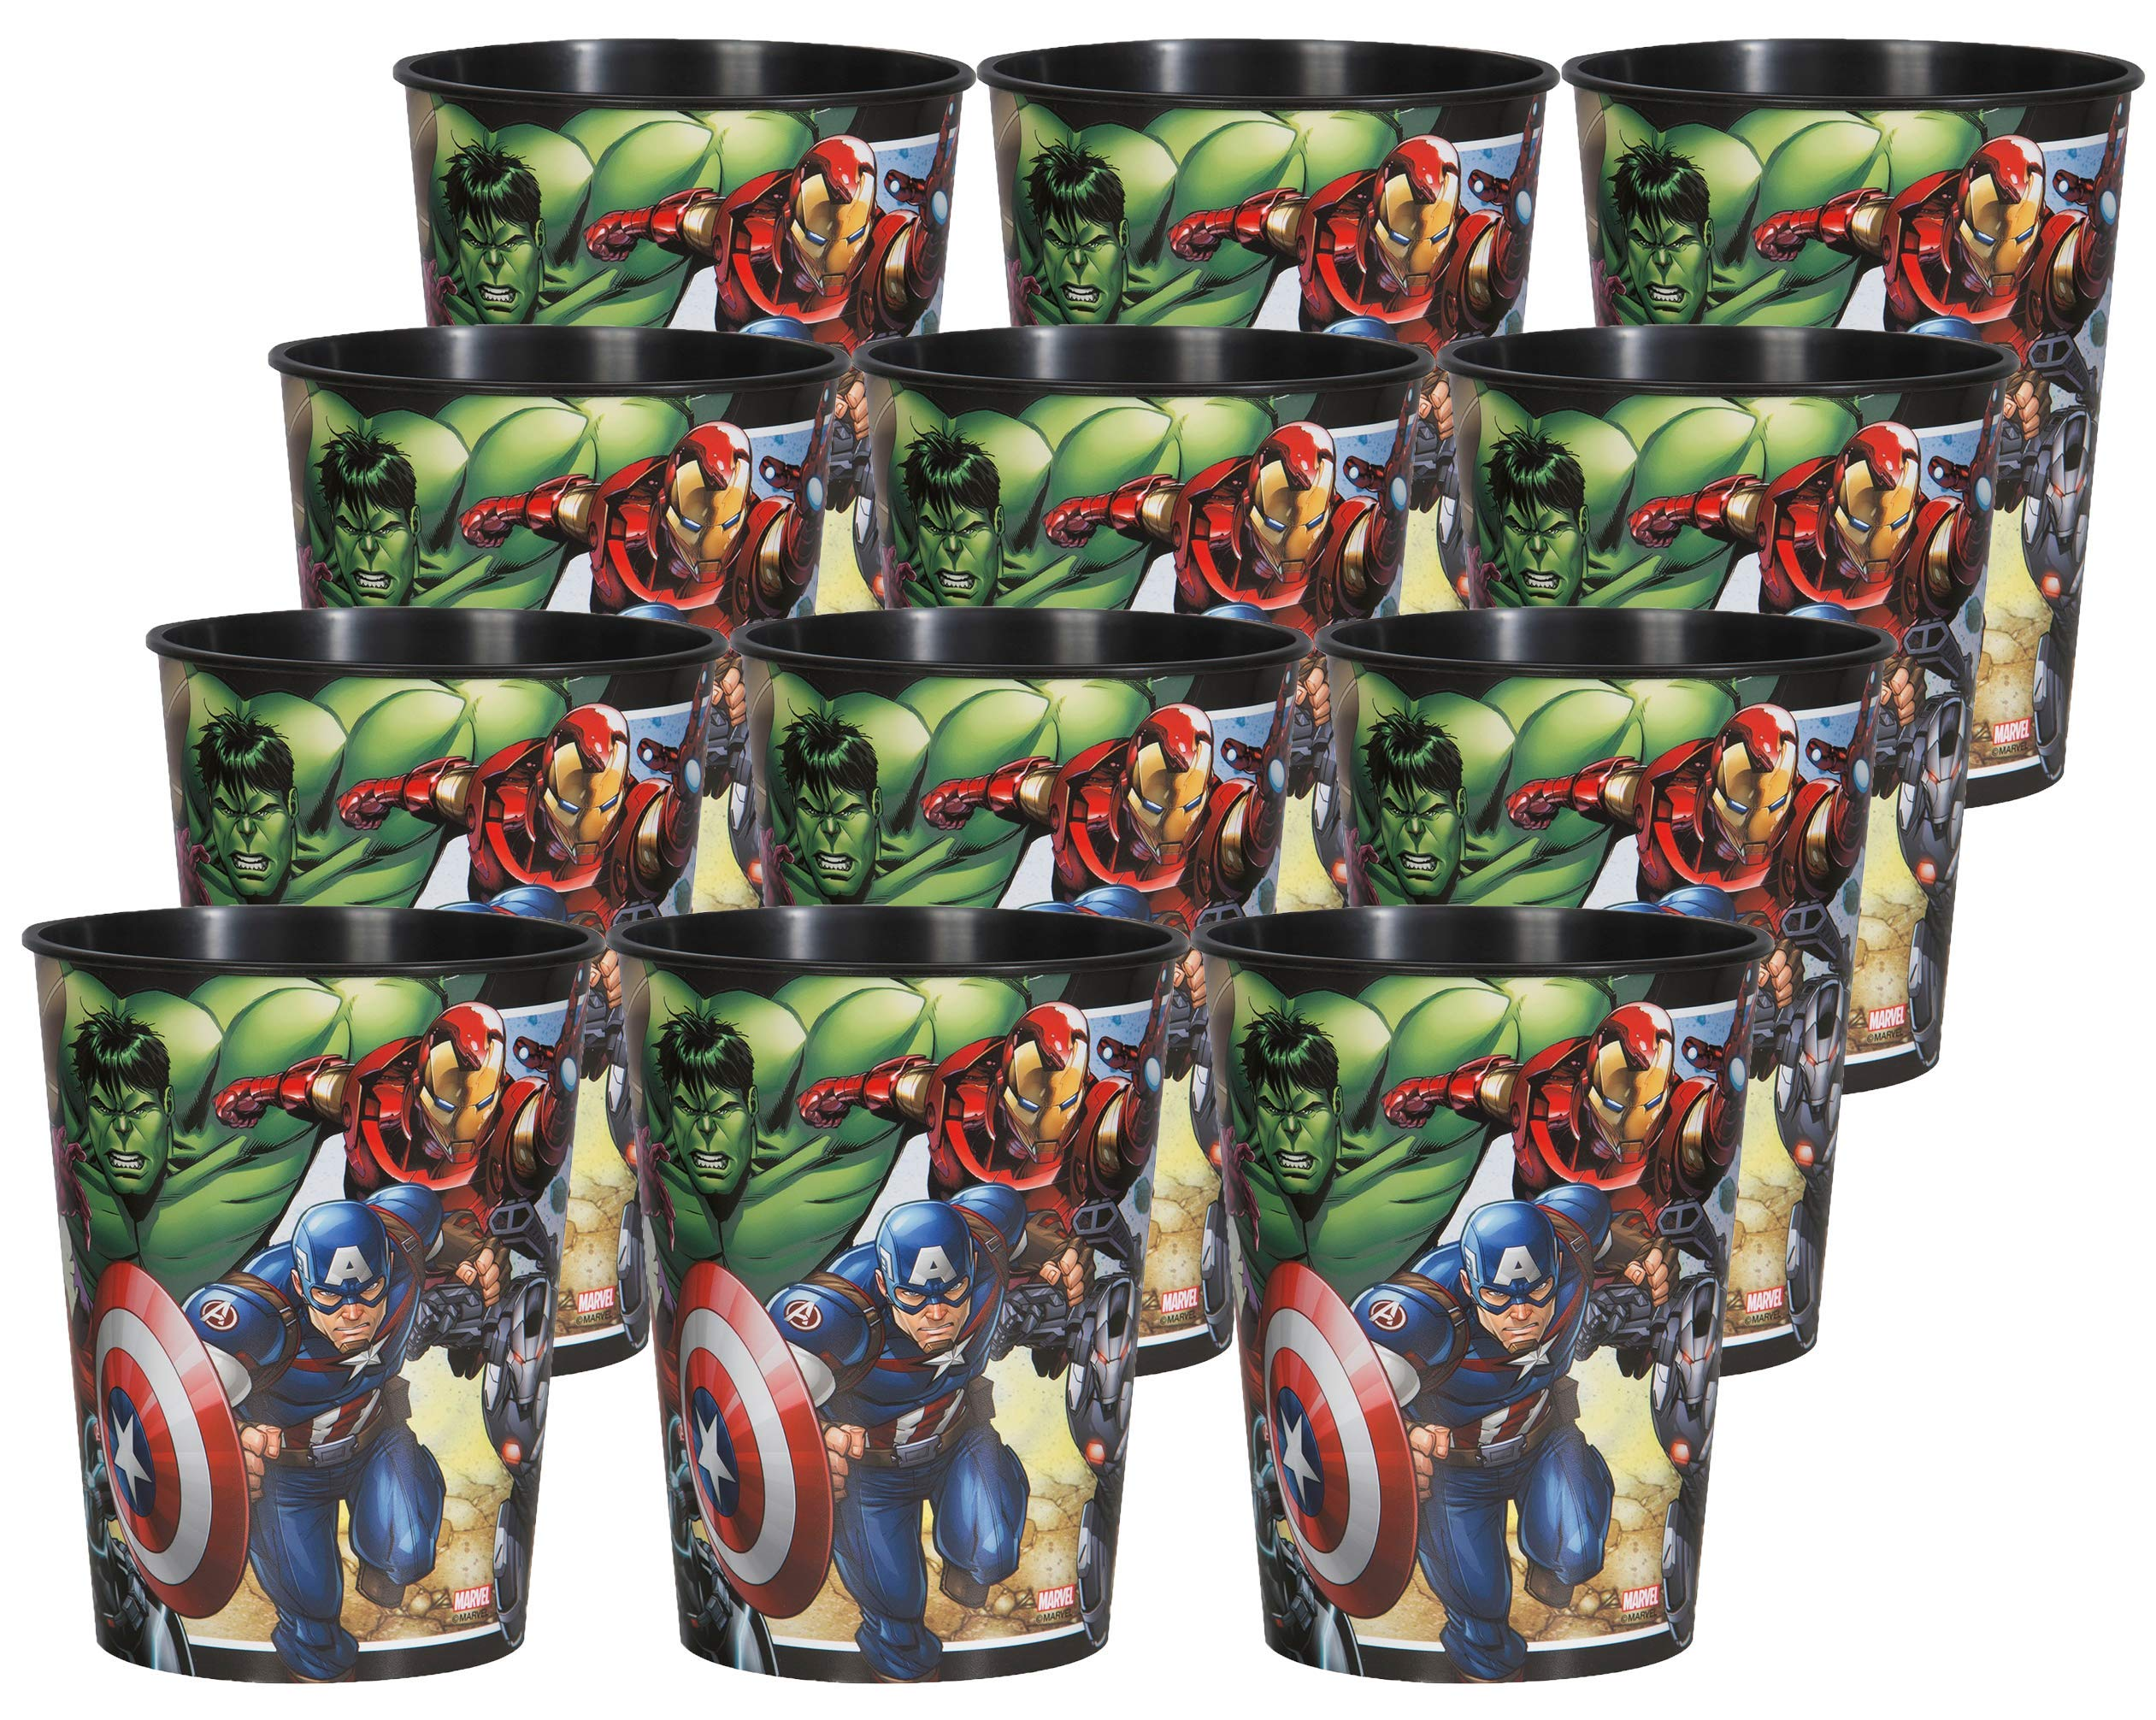 Marvel Avengers Birthday Party Supplies Set of 12 16oz Plastic Reusable Favor Cups